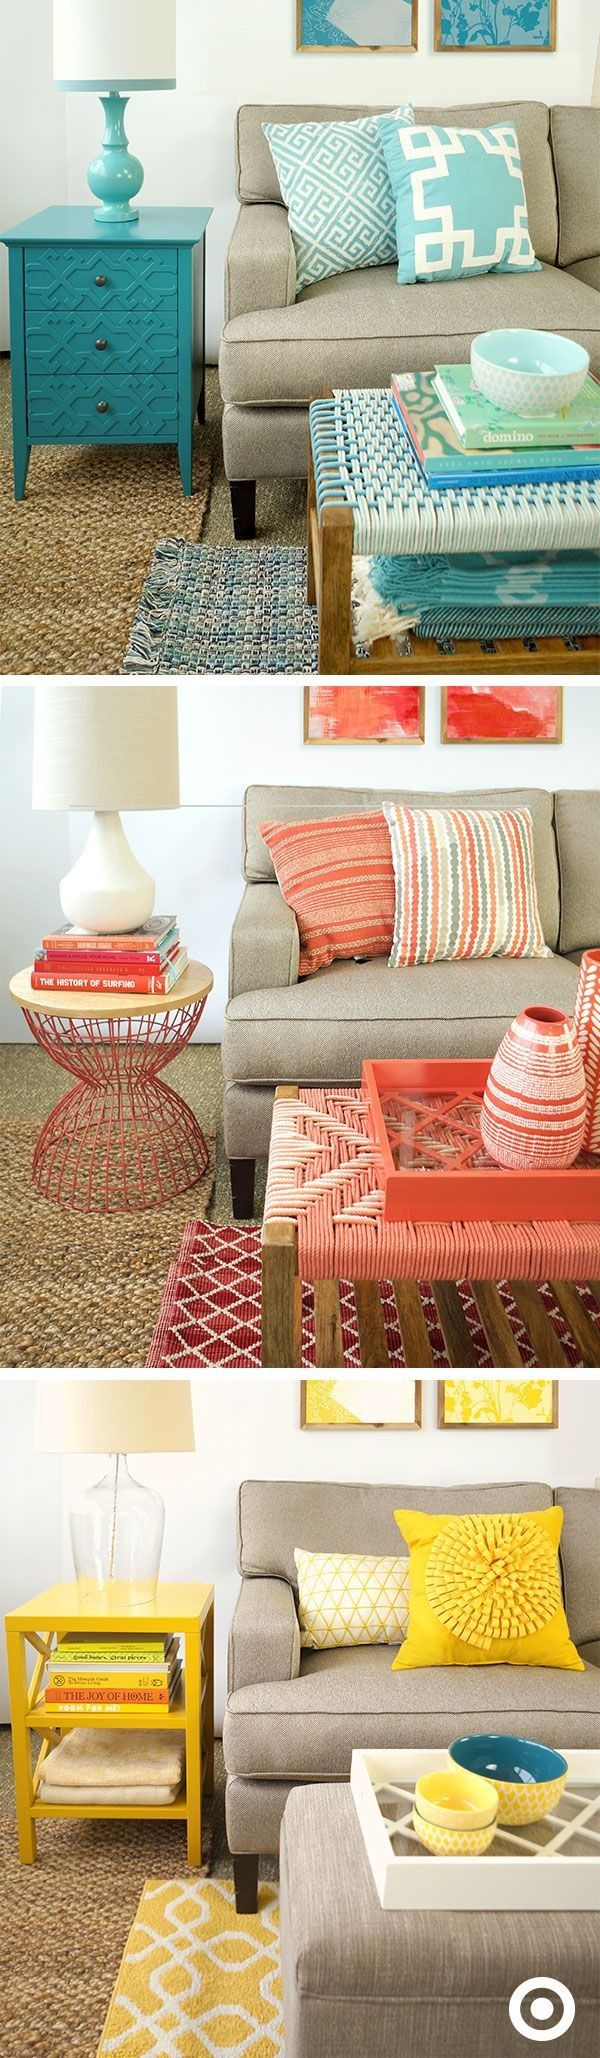 10 Easy Fixes for the Most Annoying Home Decor Problems | Accent ...